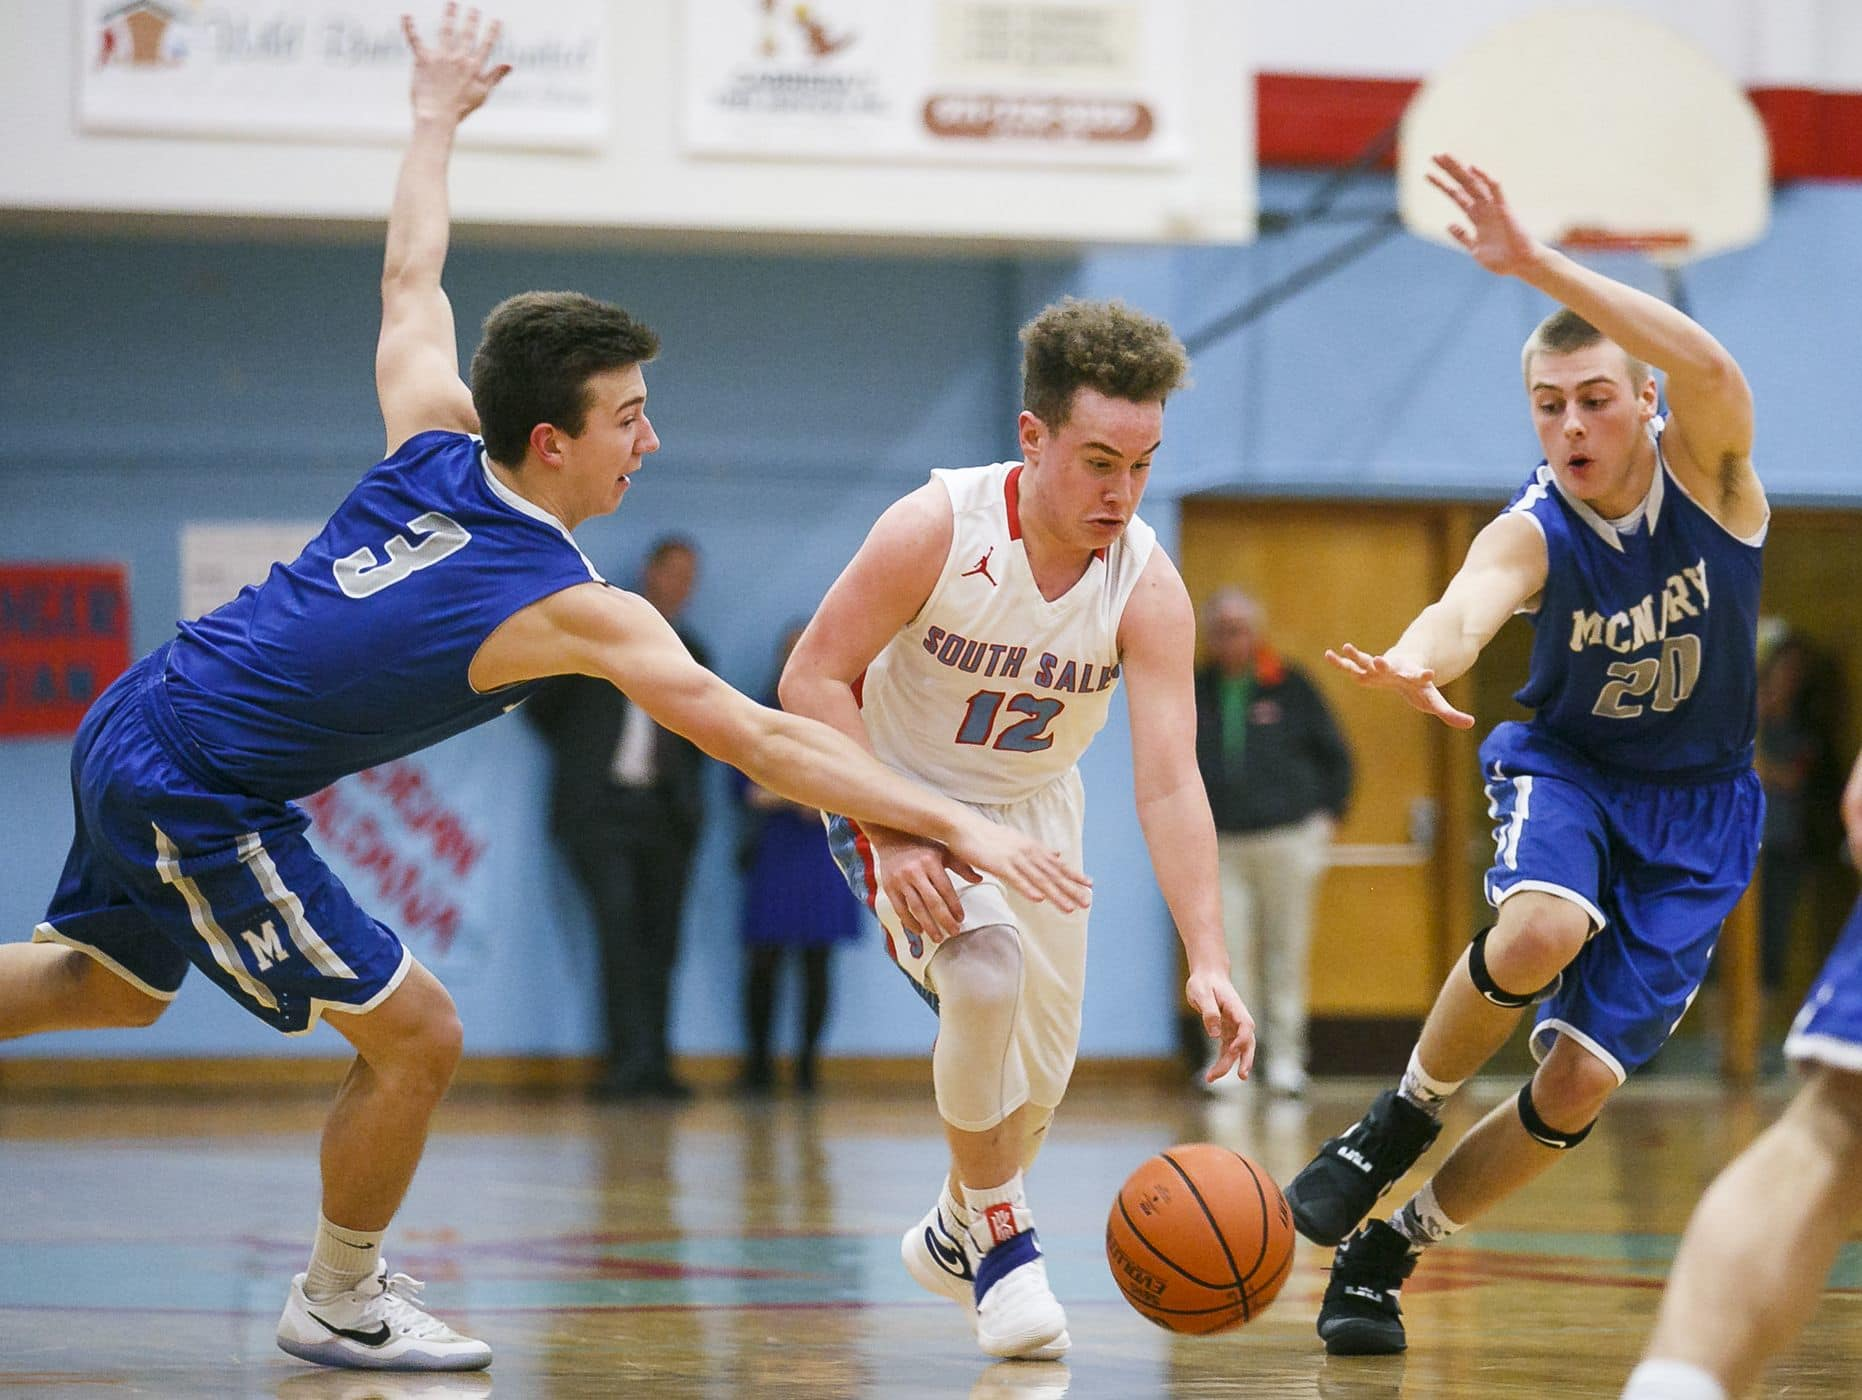 South Salem's Trey Galbraith (12) dribbles through McNary's Andrew Jones (3) and Cade Goff (20) in a game on Tuesday, Feb. 14, 2017. South Salem won the home game 81-71 over McNary.